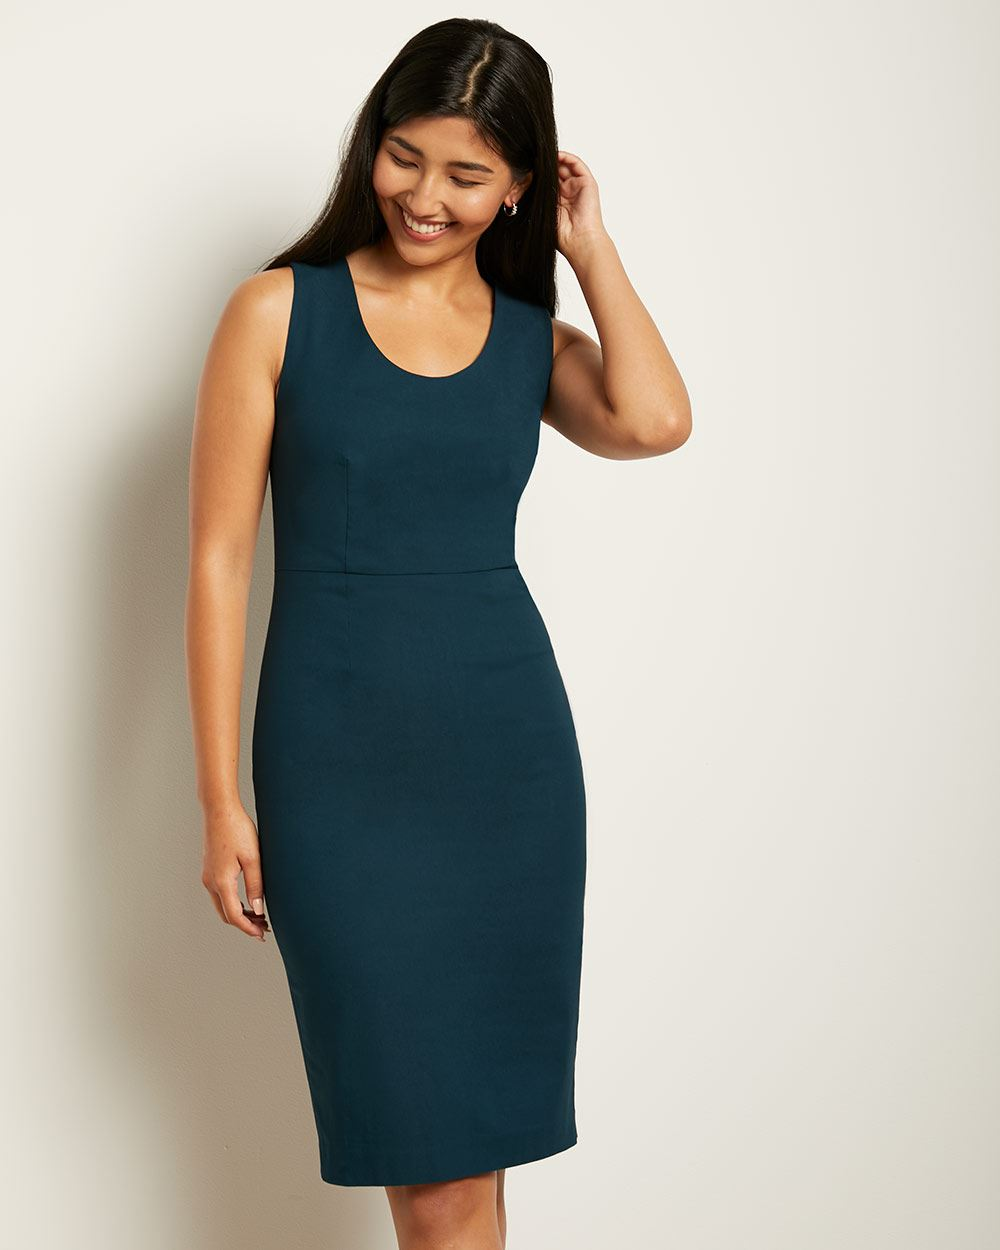 U-neck Sheath City dress